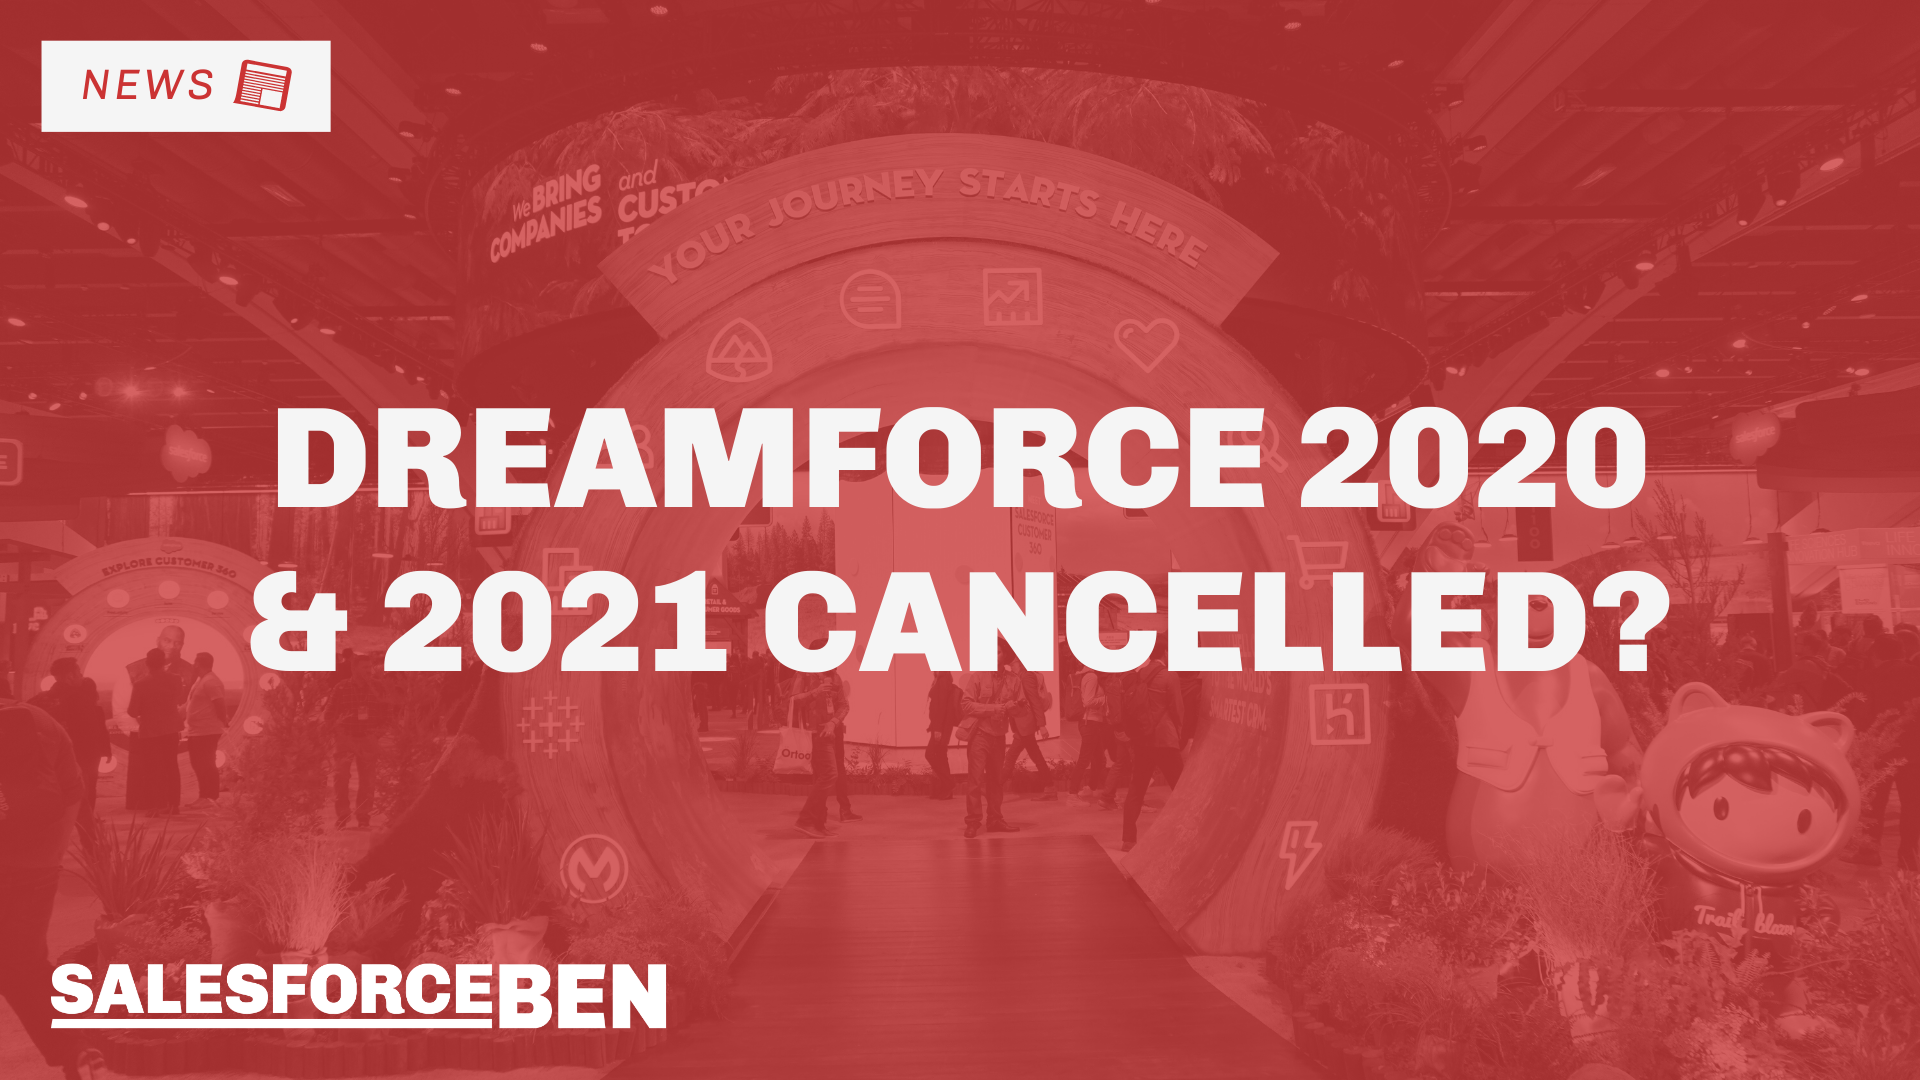 Will Virtual Dreamforce 2020 & Dreamforce 2021 be Cancelled?